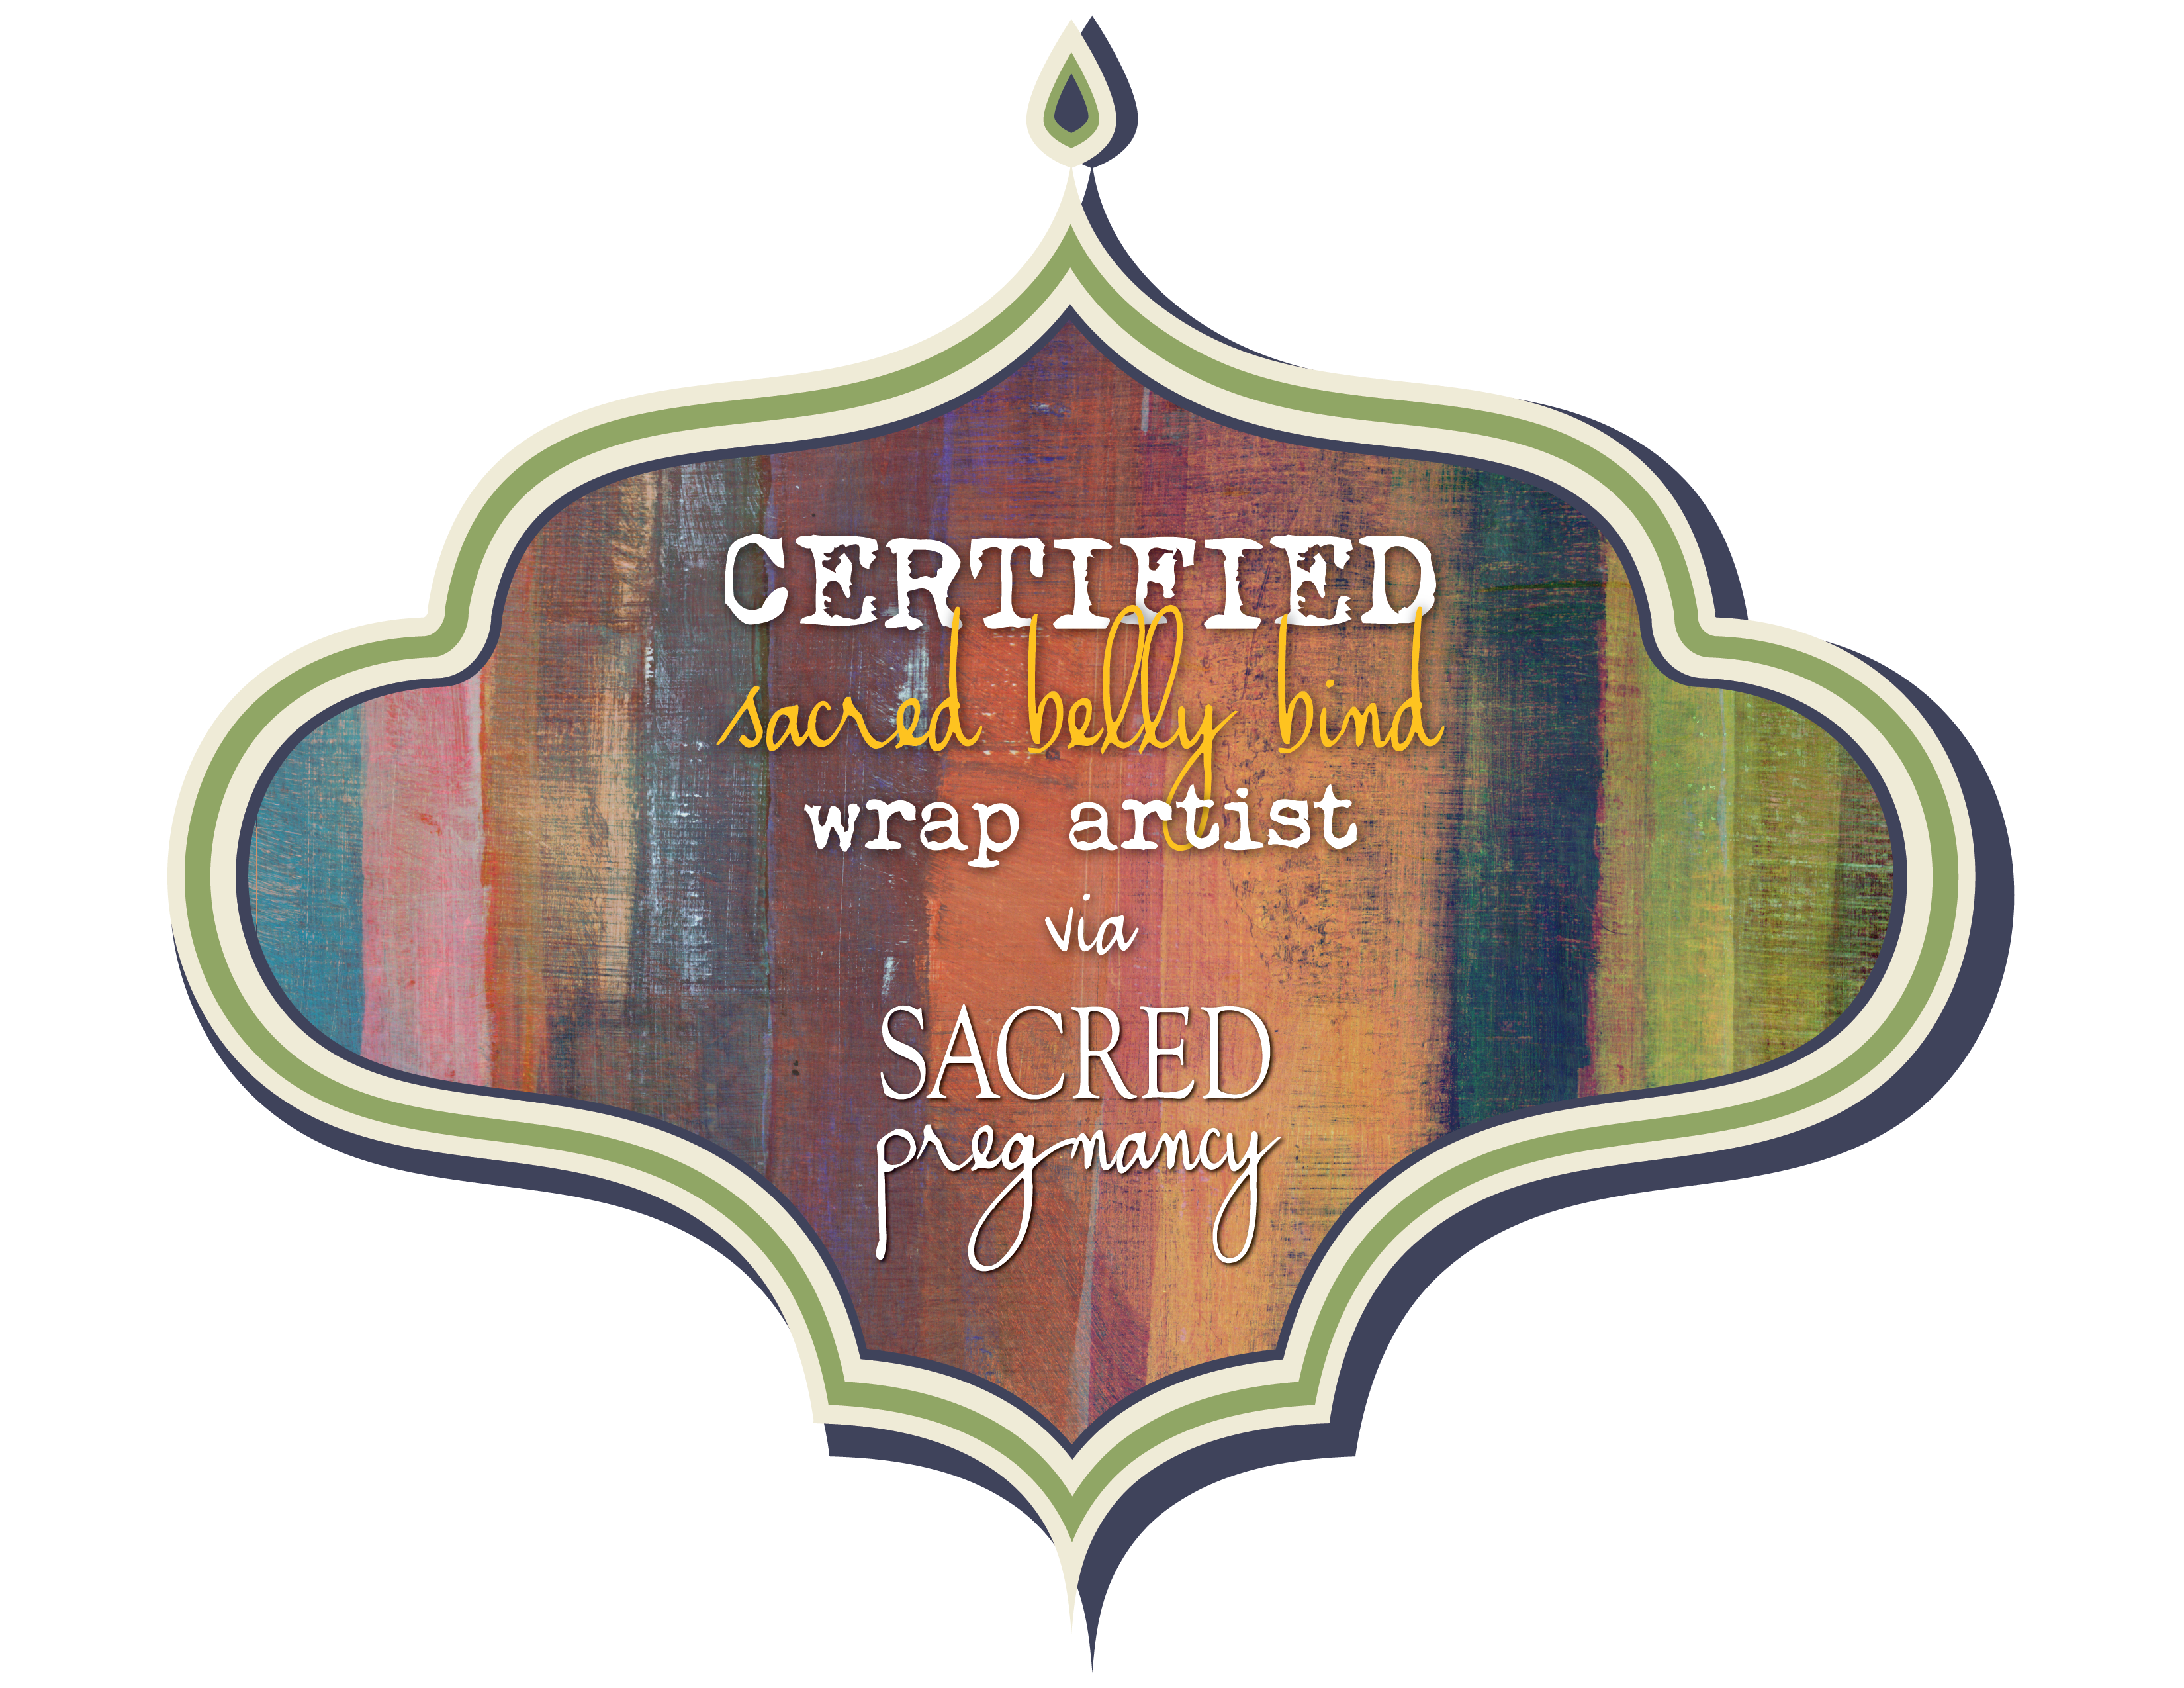 Sacred Belly Bind wrap artist